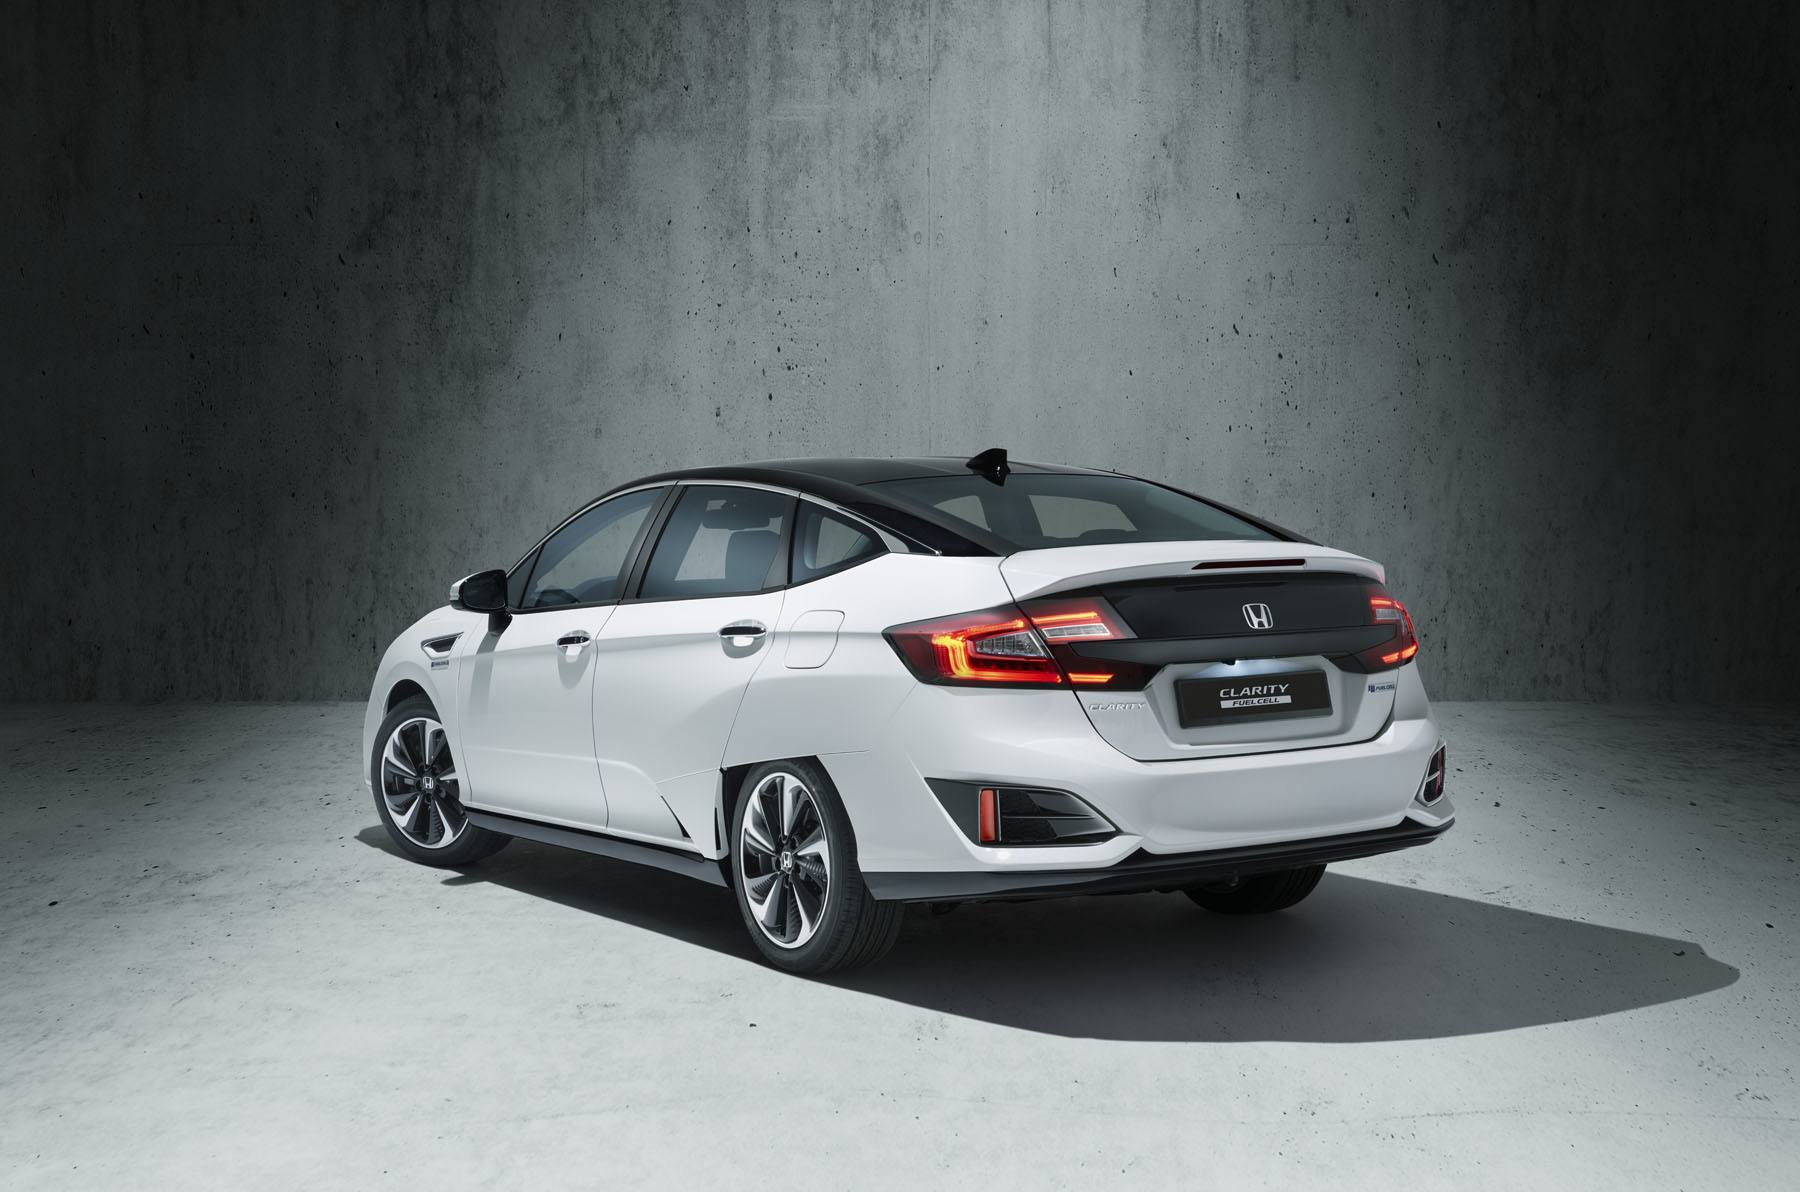 Honda clarity car in front of CGI concrete environment